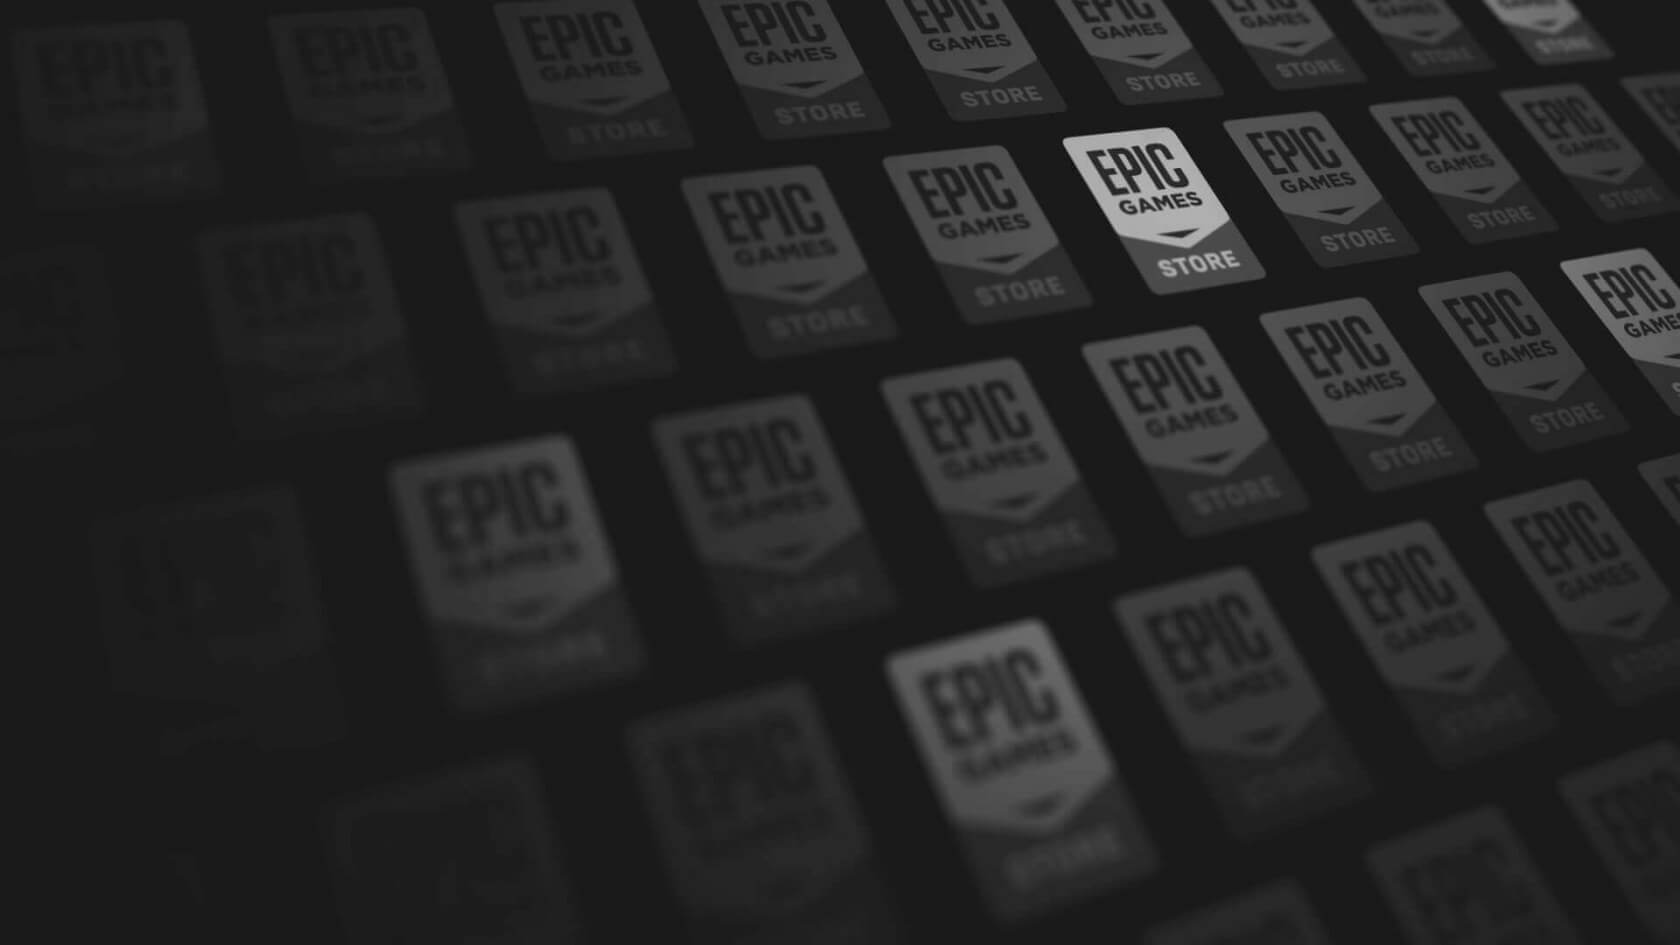 Epic takes the battle to Steam by giving EVERYTHING away for free